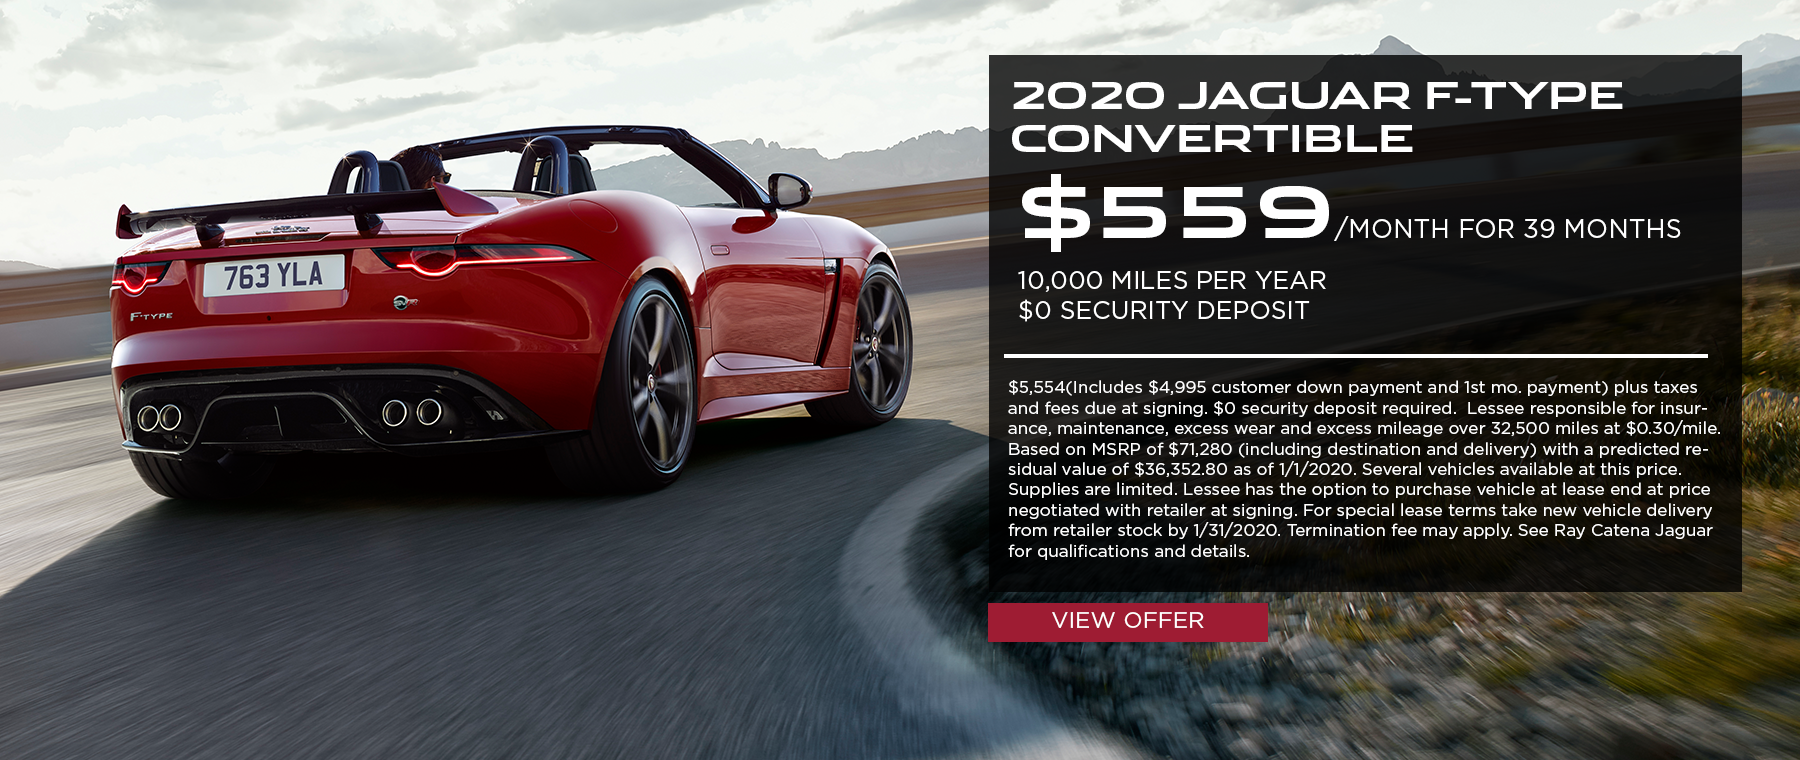 2020 Jaguar F-TYPE Conv · $559/mo. · 39 mos. · 10,000 miles per year  $5,554(Includes $4,995 customer down payment and 1st mo. payment) plus taxes and fees due at signing. $0 security deposit required.  Lessee responsible for insurance, maintenance, excess wear and excess mileage over 32,500 miles at $0.30/mile. Based on MSRP of $71,280 (including destination and delivery) with a predicted residual value of $36,352.80 as of 1/1/2020. Several vehicles available at this price. Supplies are limited. Lessee has the option to purchase vehicle at lease end at price negotiated with retailer at signing. For special lease terms take new vehicle delivery from retailer stock by 1/31/2020. Termination fee may apply. See Ray Catena Jaguar for qualifications and details. Click to view offer. Red F-TYPE Convertible rear on sunny highway.